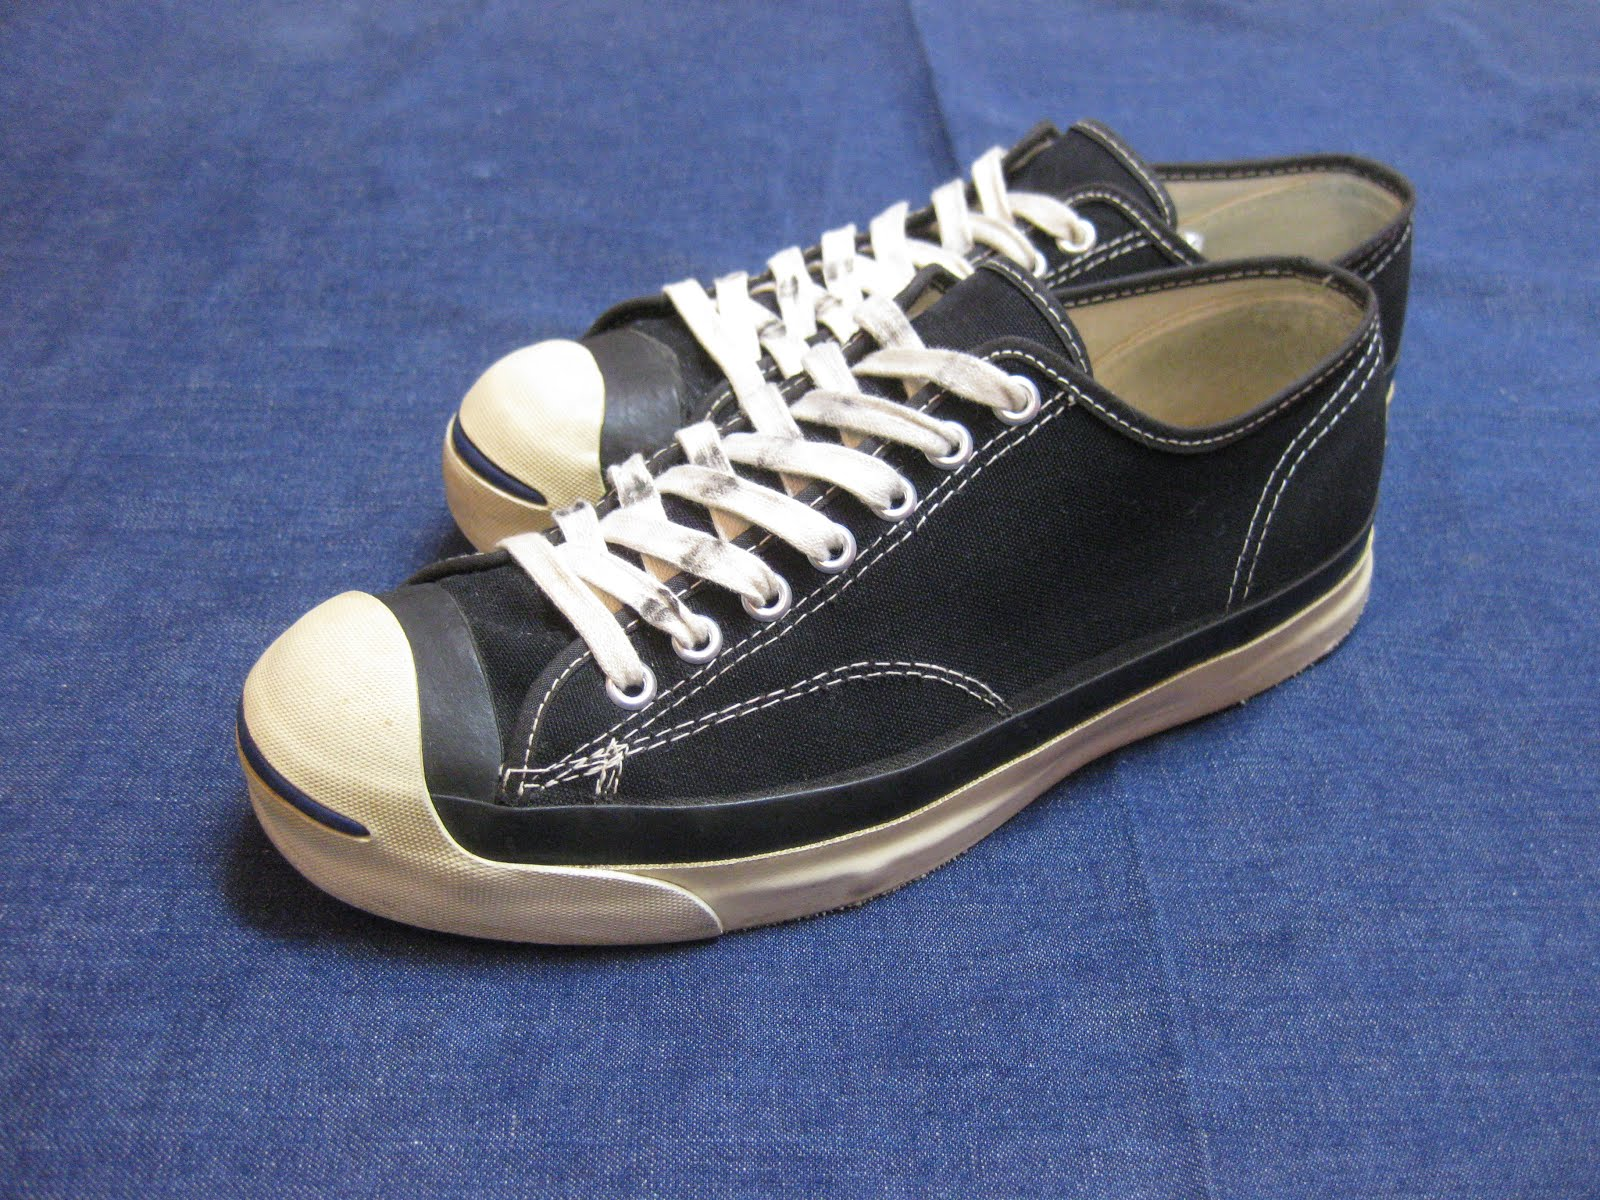 ~60's 「B.F.GOODRICH」             「JACK PURCELL」                   BLACK